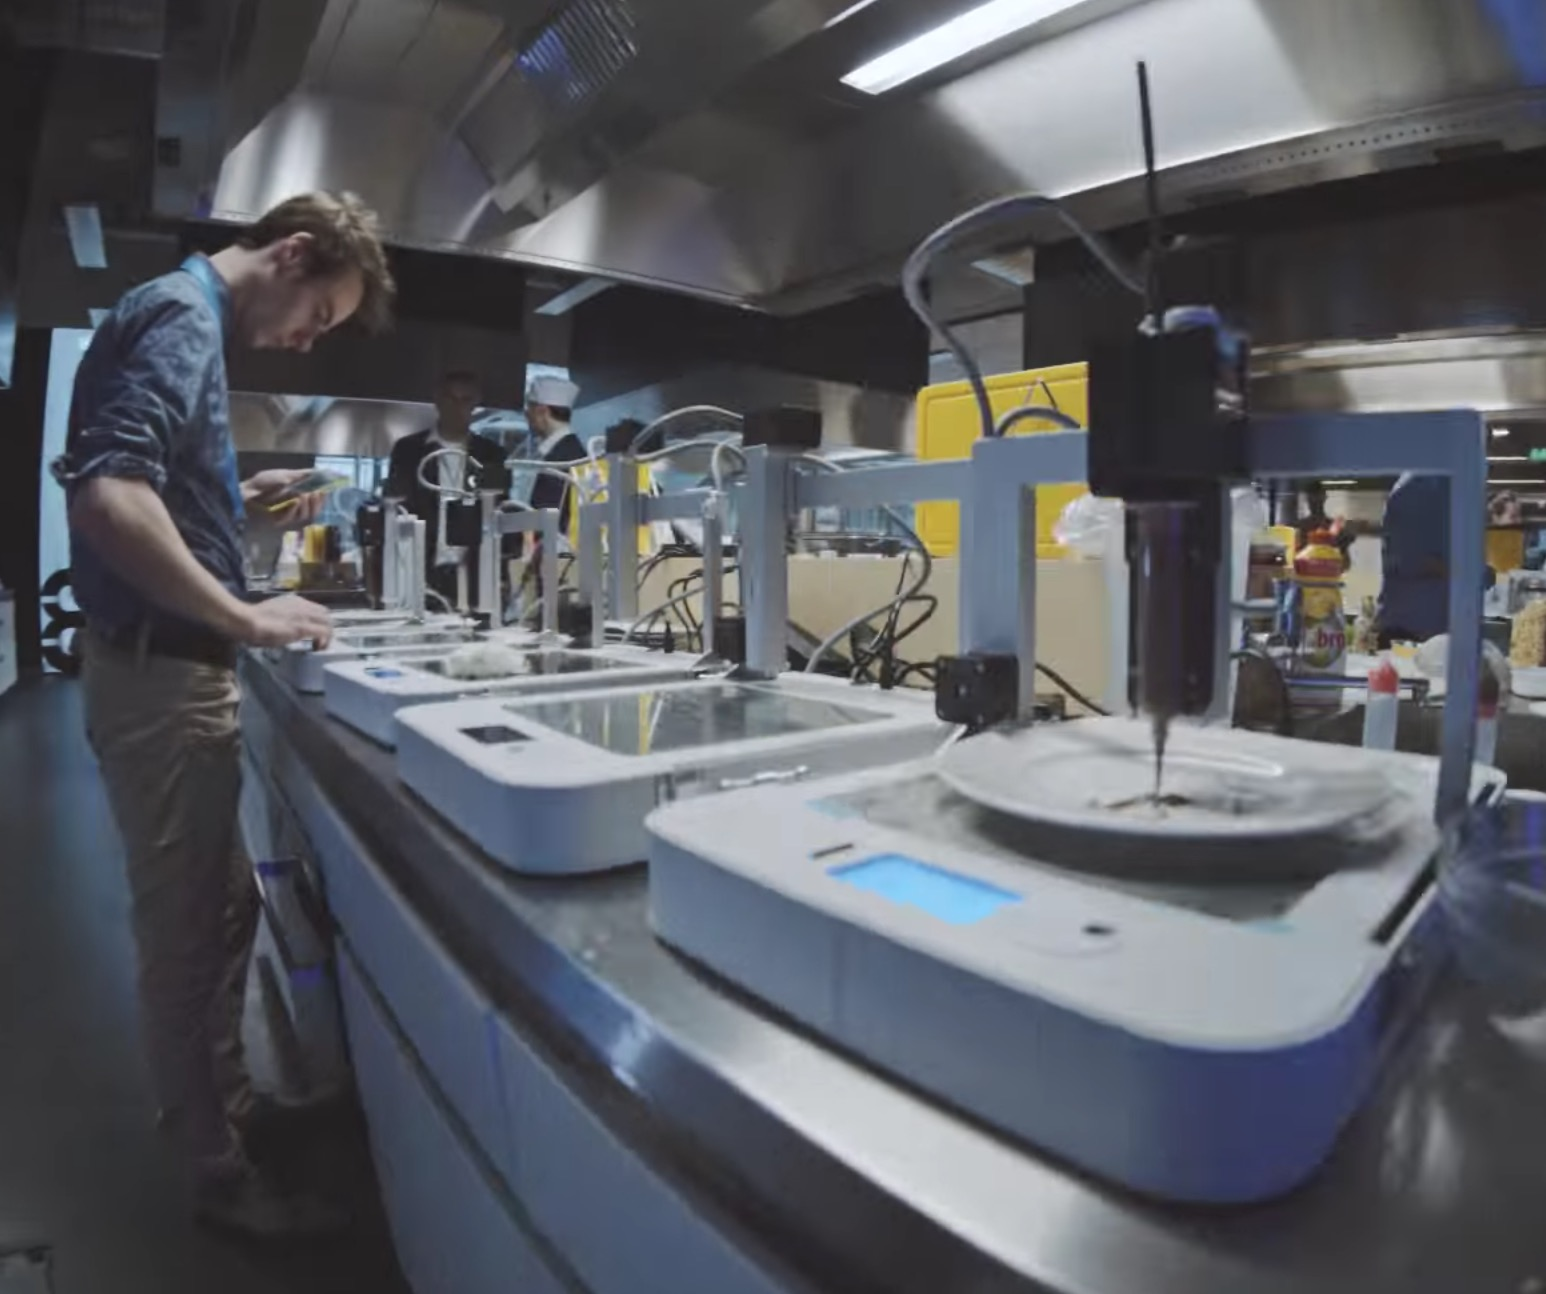 An array of 3D food printers in operation